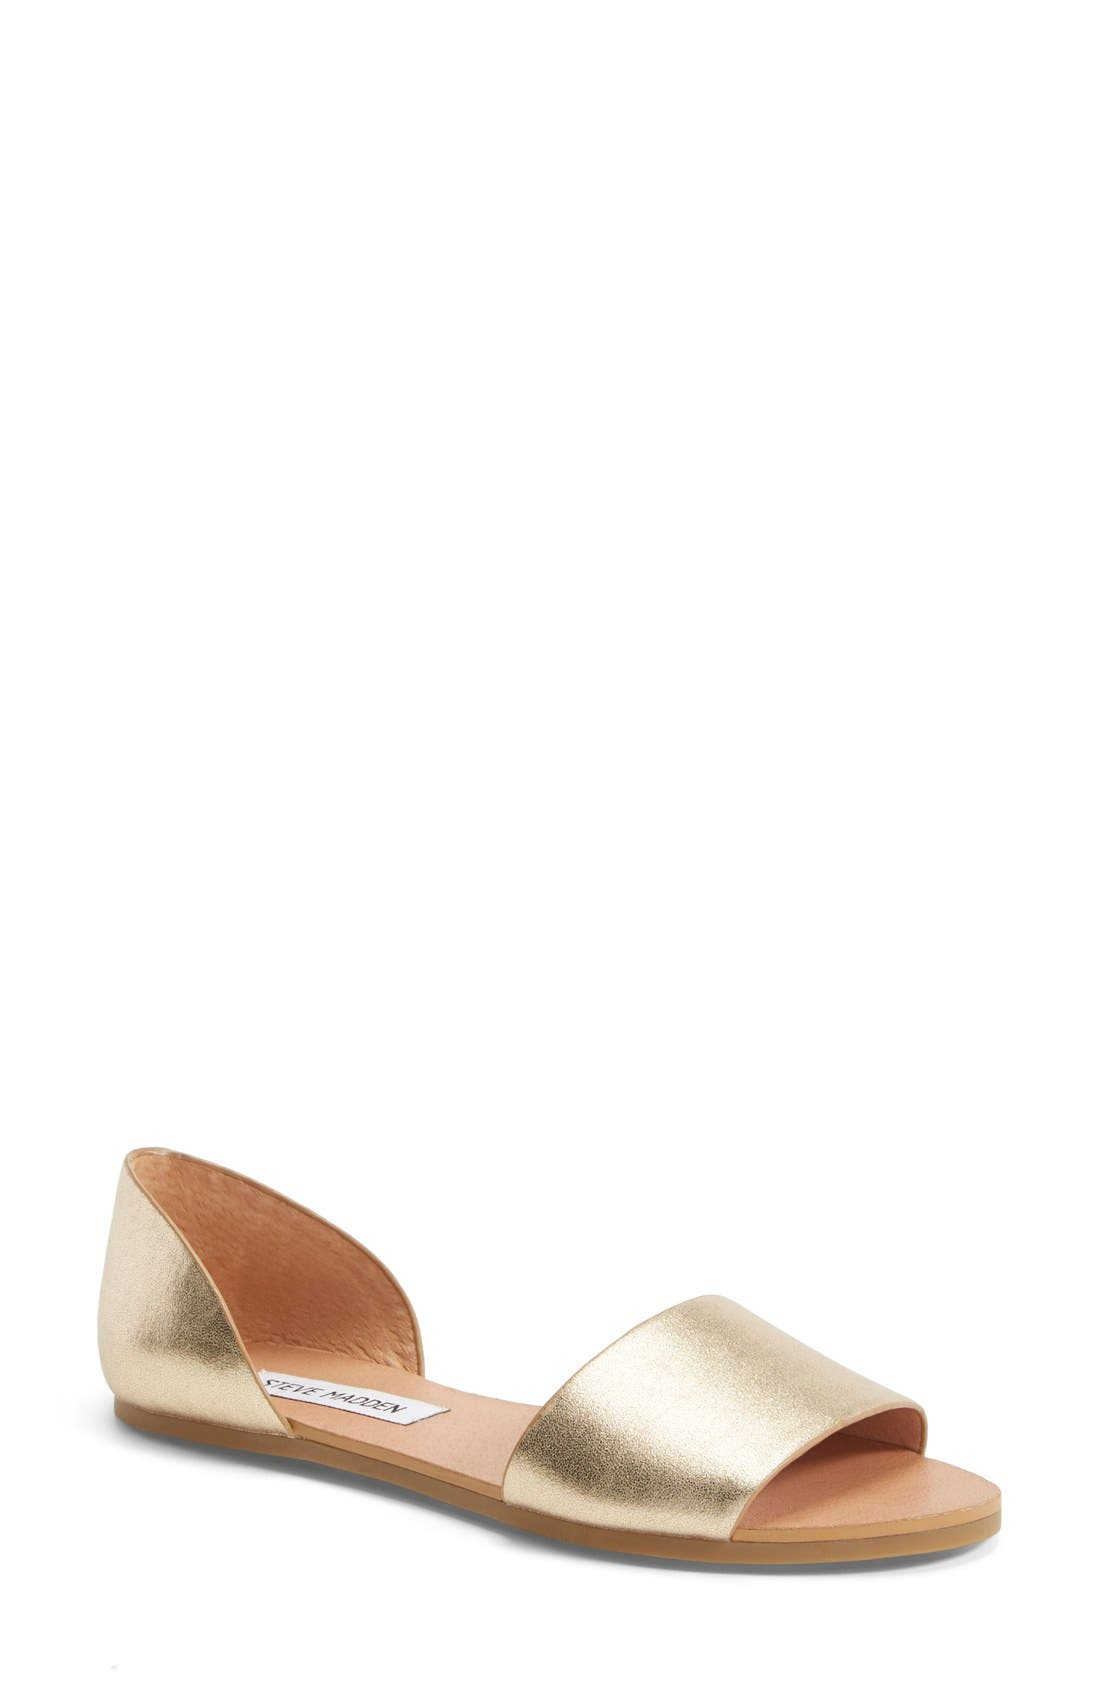 Alternate Image 1 Selected - Steve Madden 'Twostp' d'Orsay Sandal (Women)